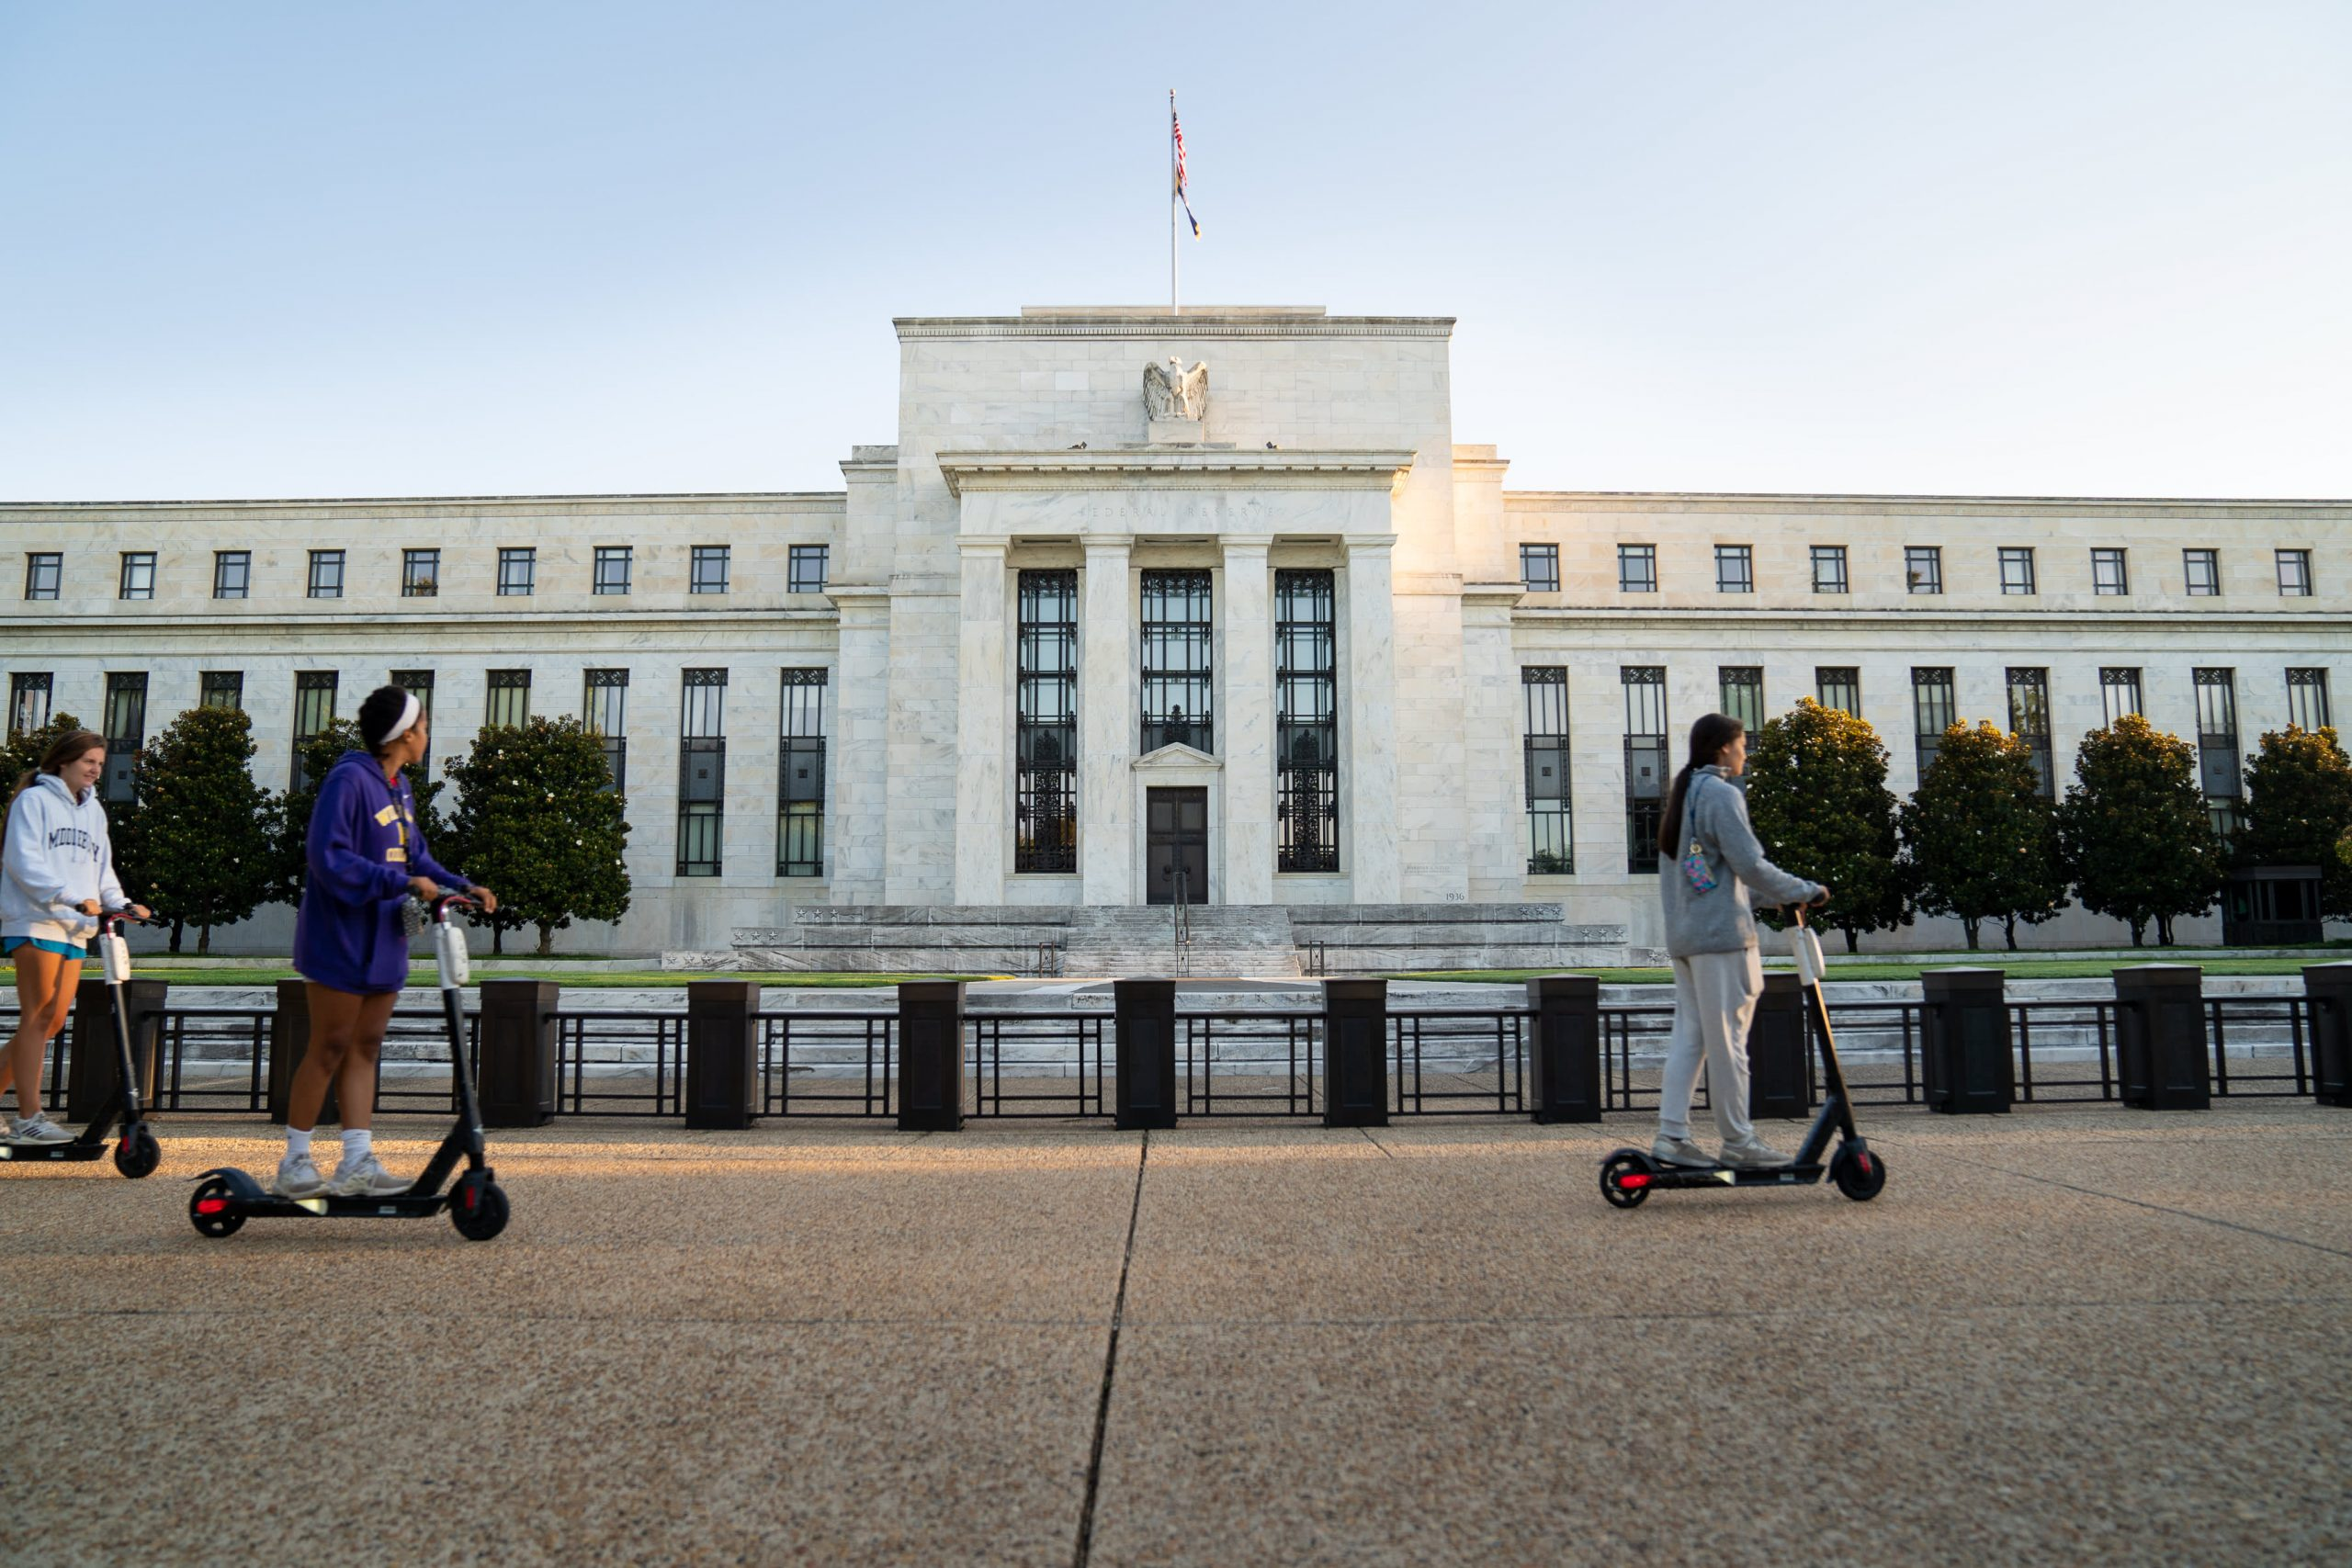 fed-raises-its-economic-outlook-slightly-sees-4-2-growth-next-year-and-5-unemployment-rate